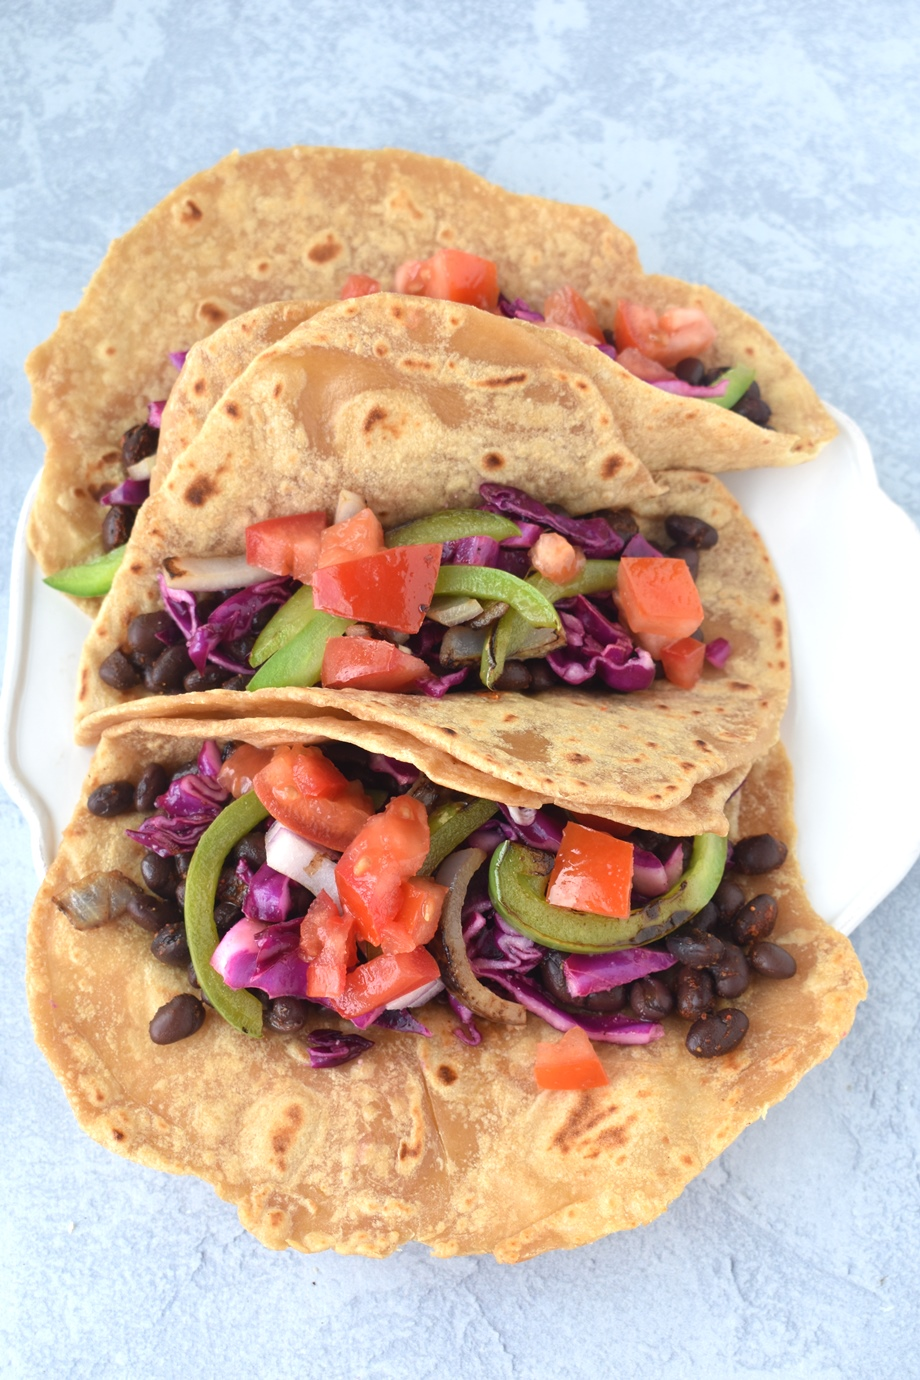 Easy Whole-Wheat Tortillas tacos